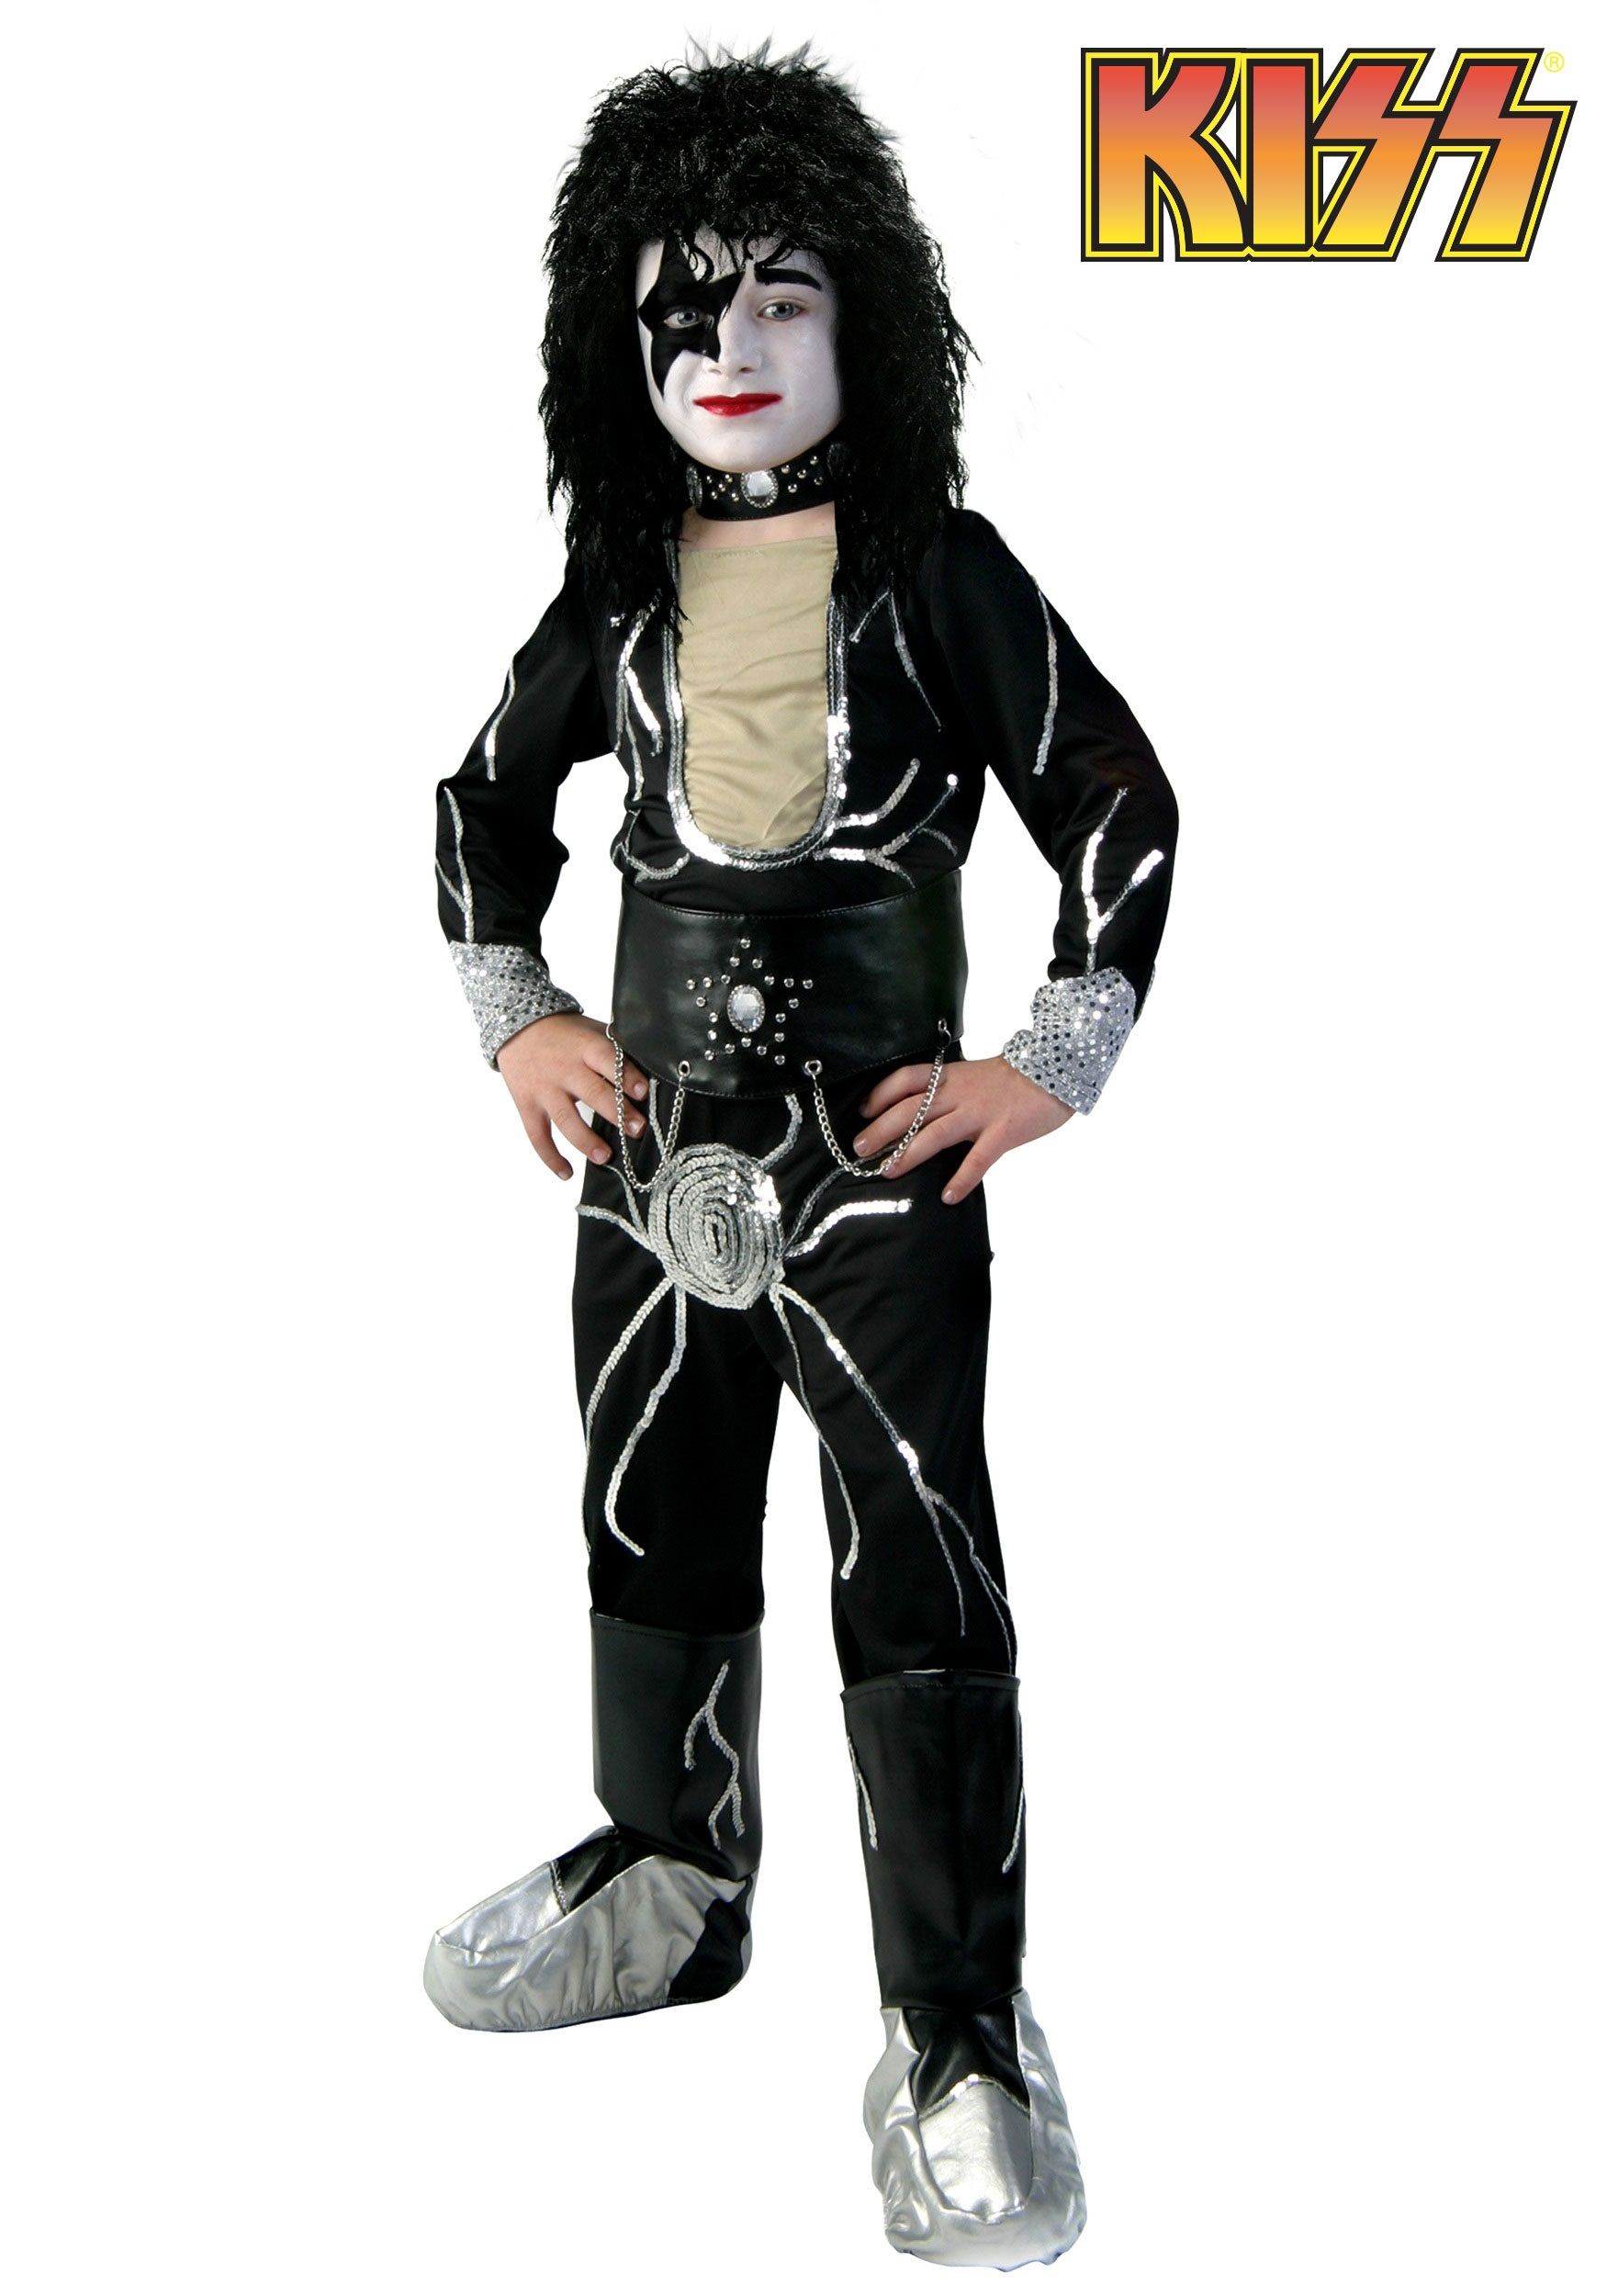 rock u0027n roll all night with rocking kiss halloween costumes for adults and kids weu0027ve got all kinds of fabulous kiss costumes and accessories just for you